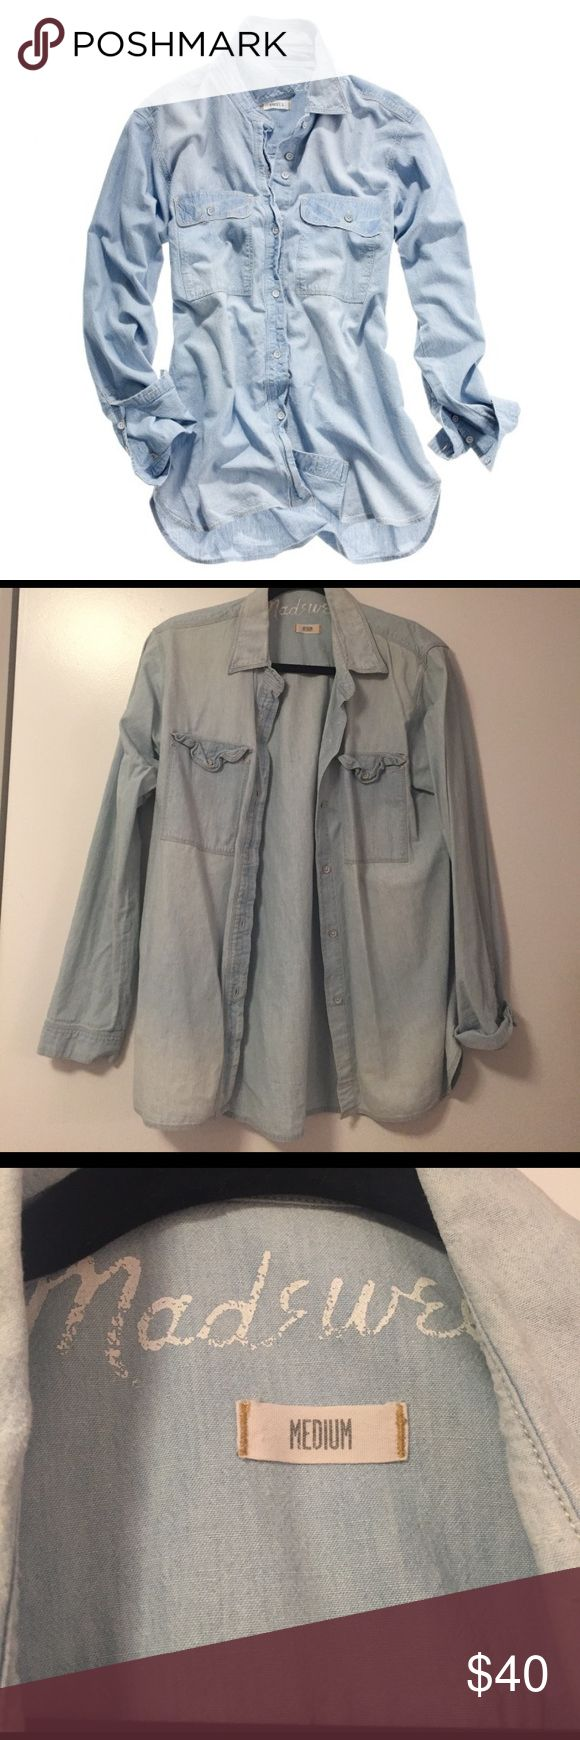 Madewell Chambray Cargo Shirt Perfect condition. Size Medium Madewell Tops Button Down Shirts